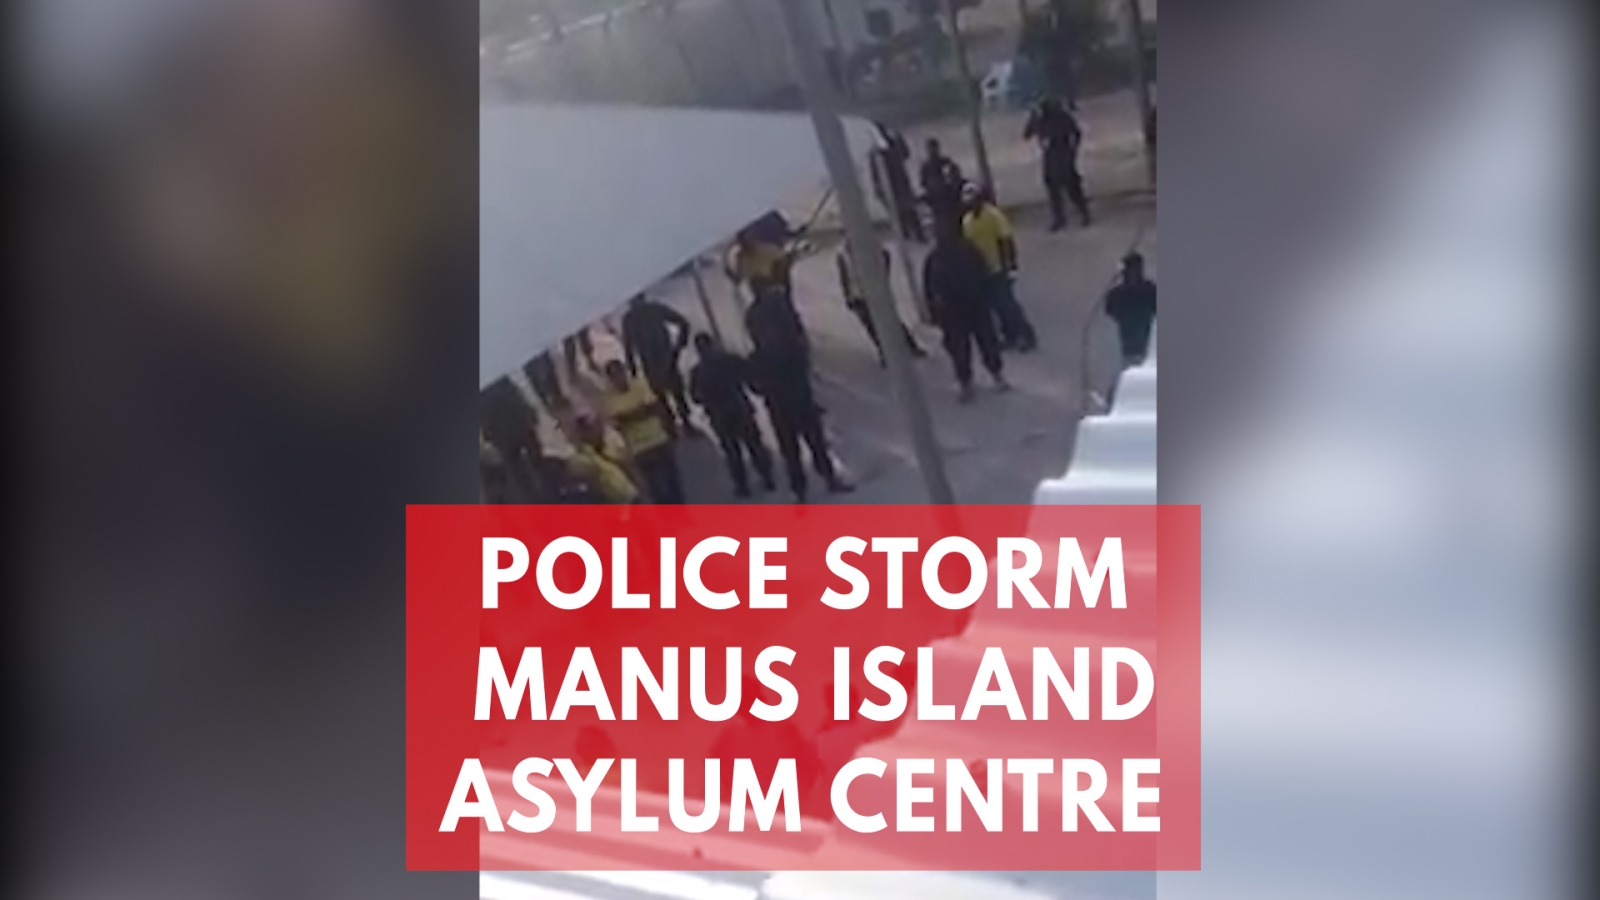 papua-new-guinea-police-order-manus-island-asylum-seekers-out-of-camp